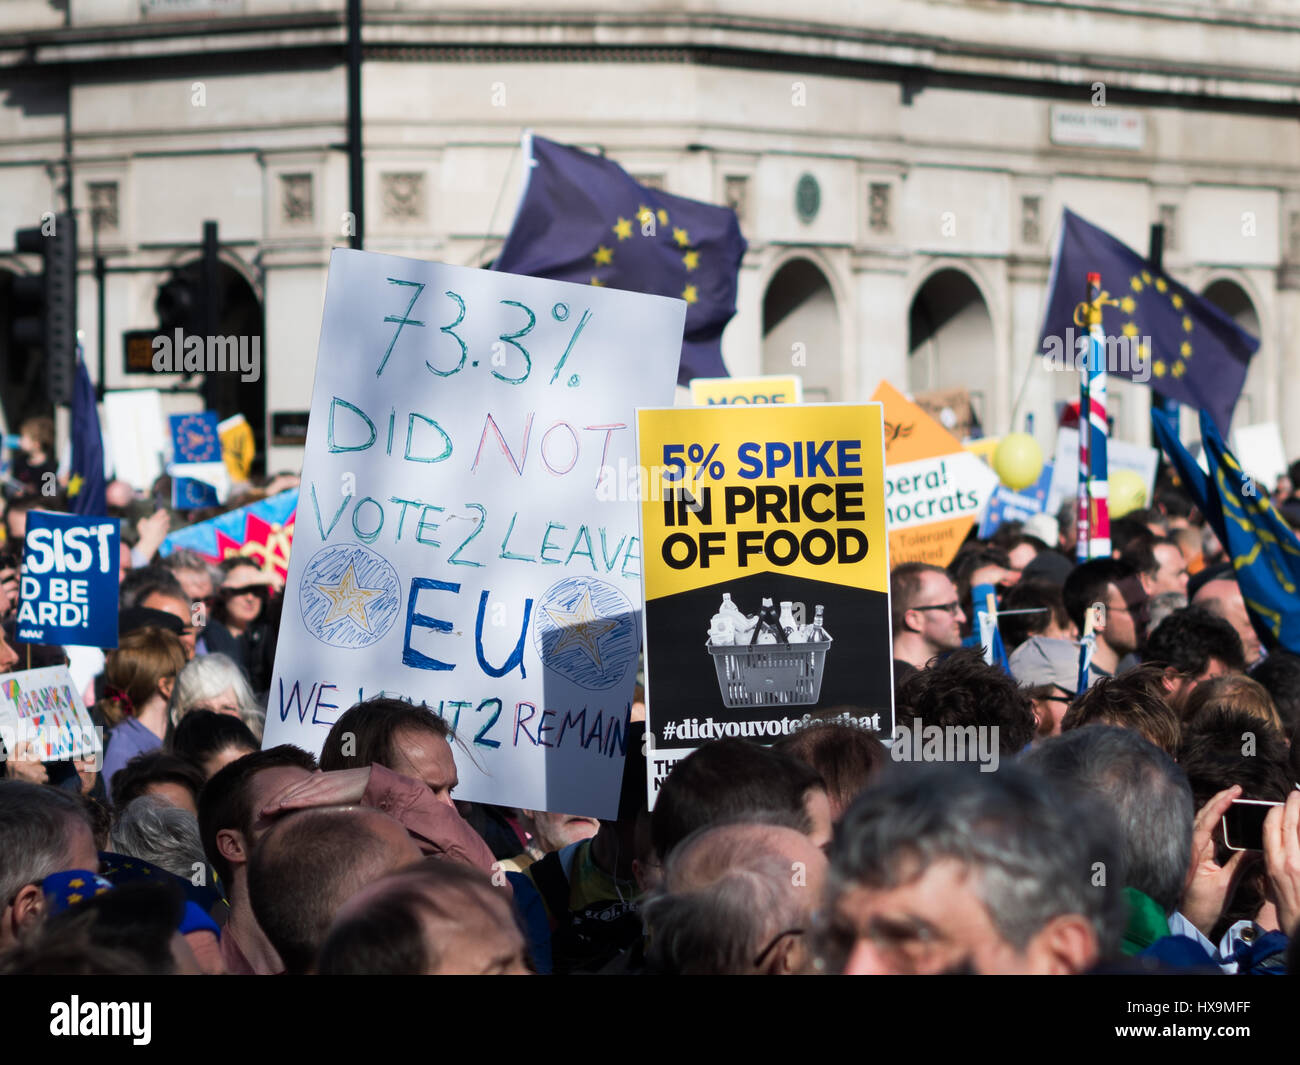 London, UK. 25th Mar, 2017. Banners carried by March for Europe participants. 5% spike in price of food. 73.3% didn't Stock Photo